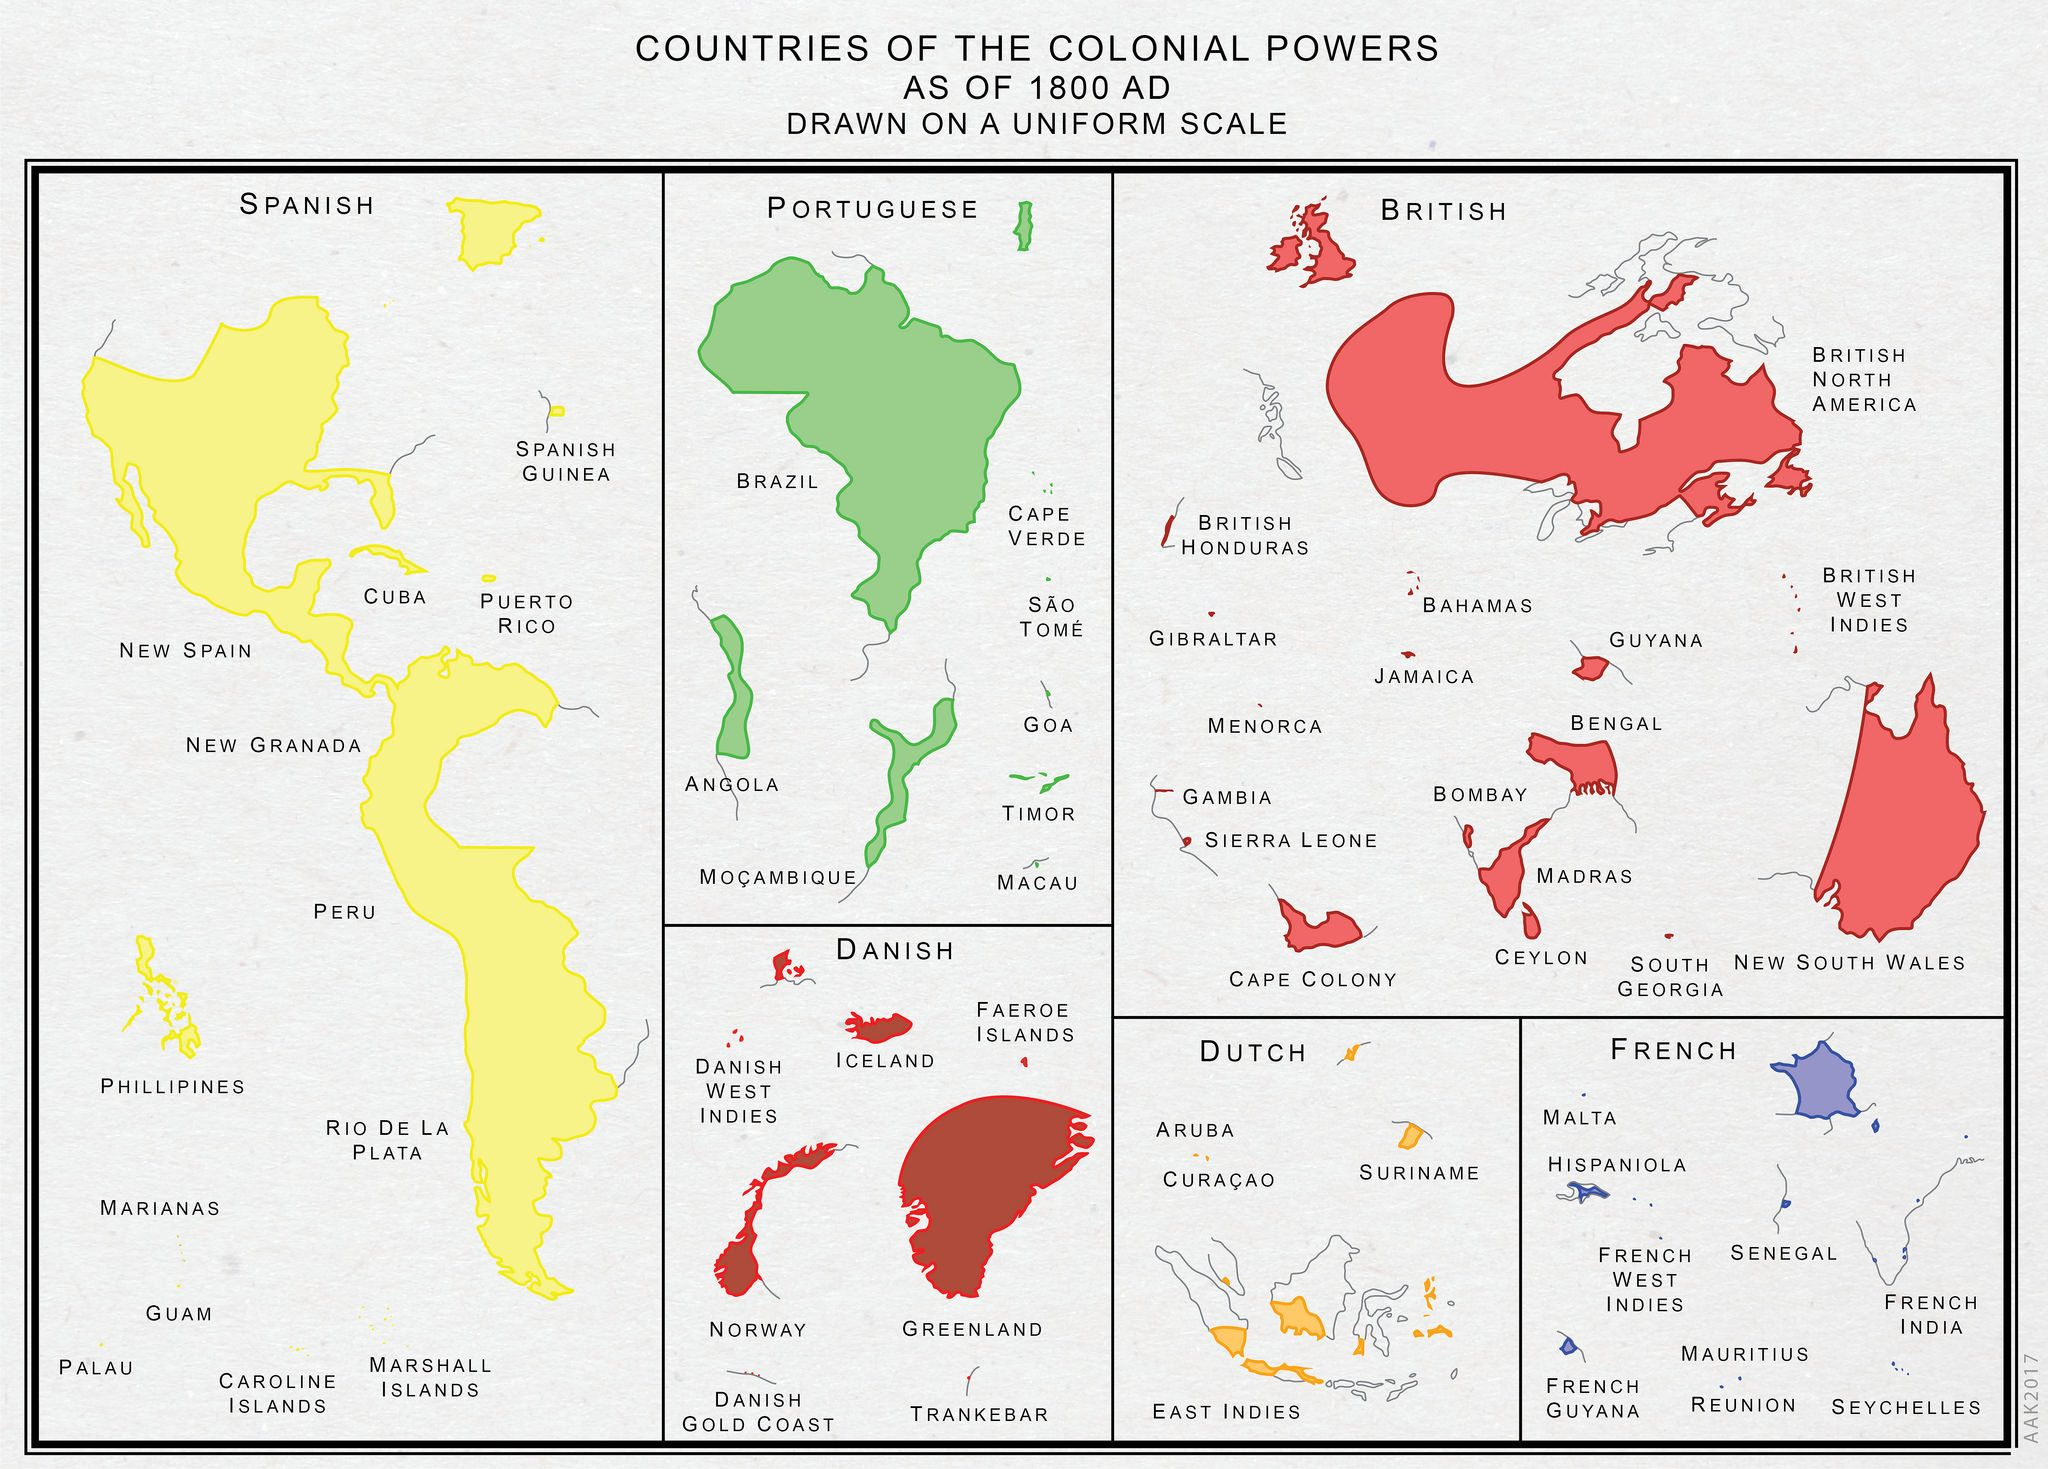 Major colonial empires drawn to scale (1800 AD) | Old maps ...